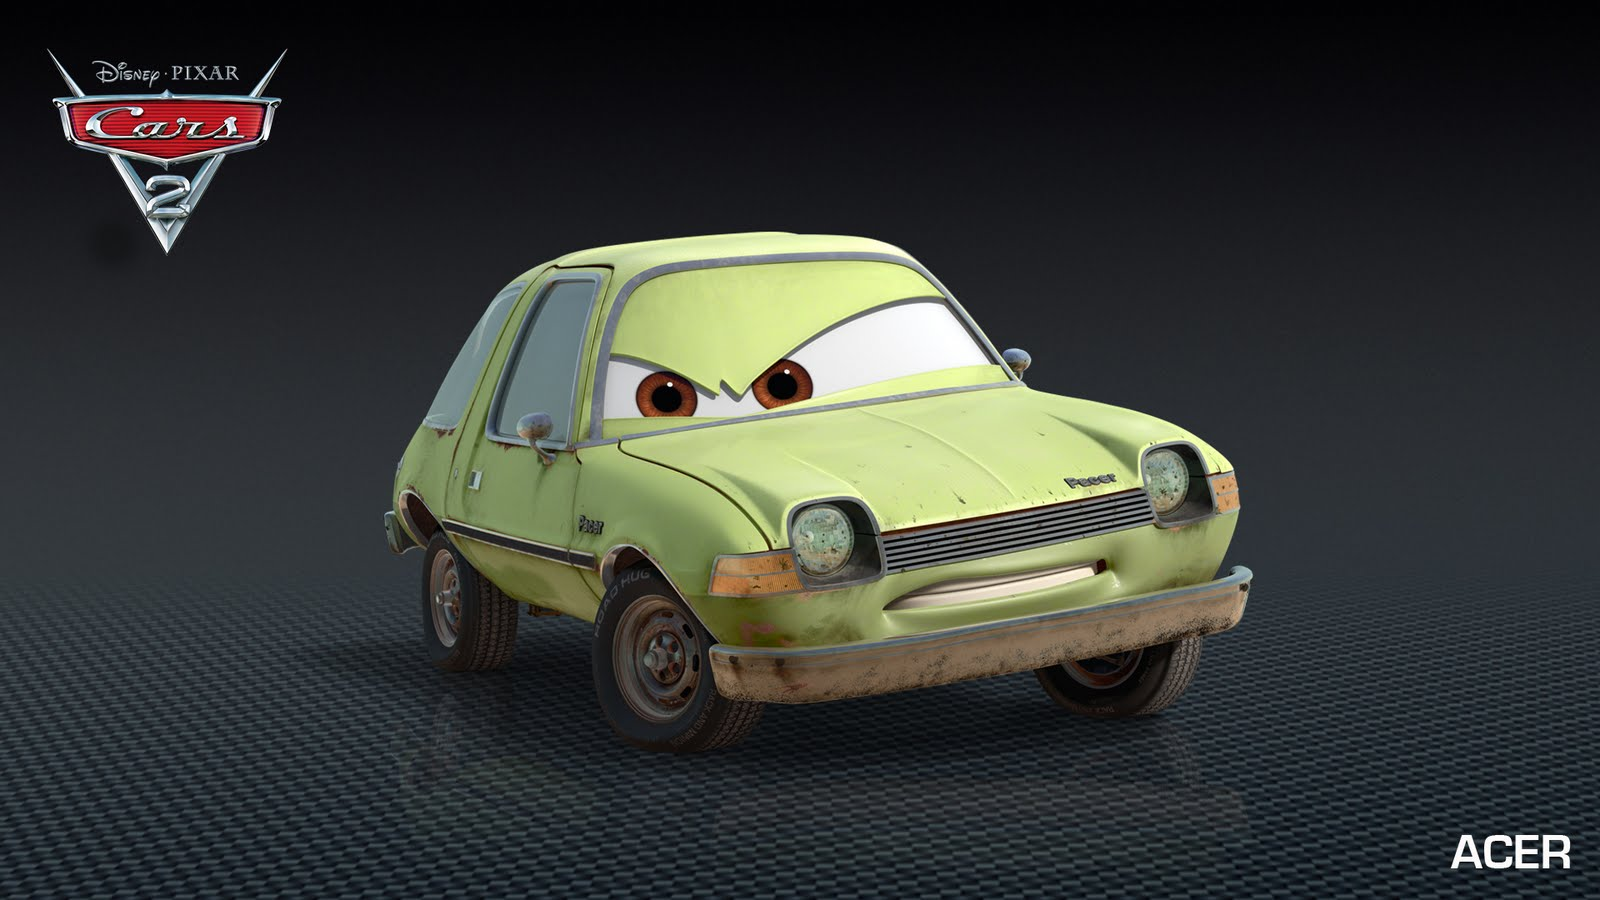 Characters In Cars: Access Pixar: New Cars 2 Characters: Grem And Acer